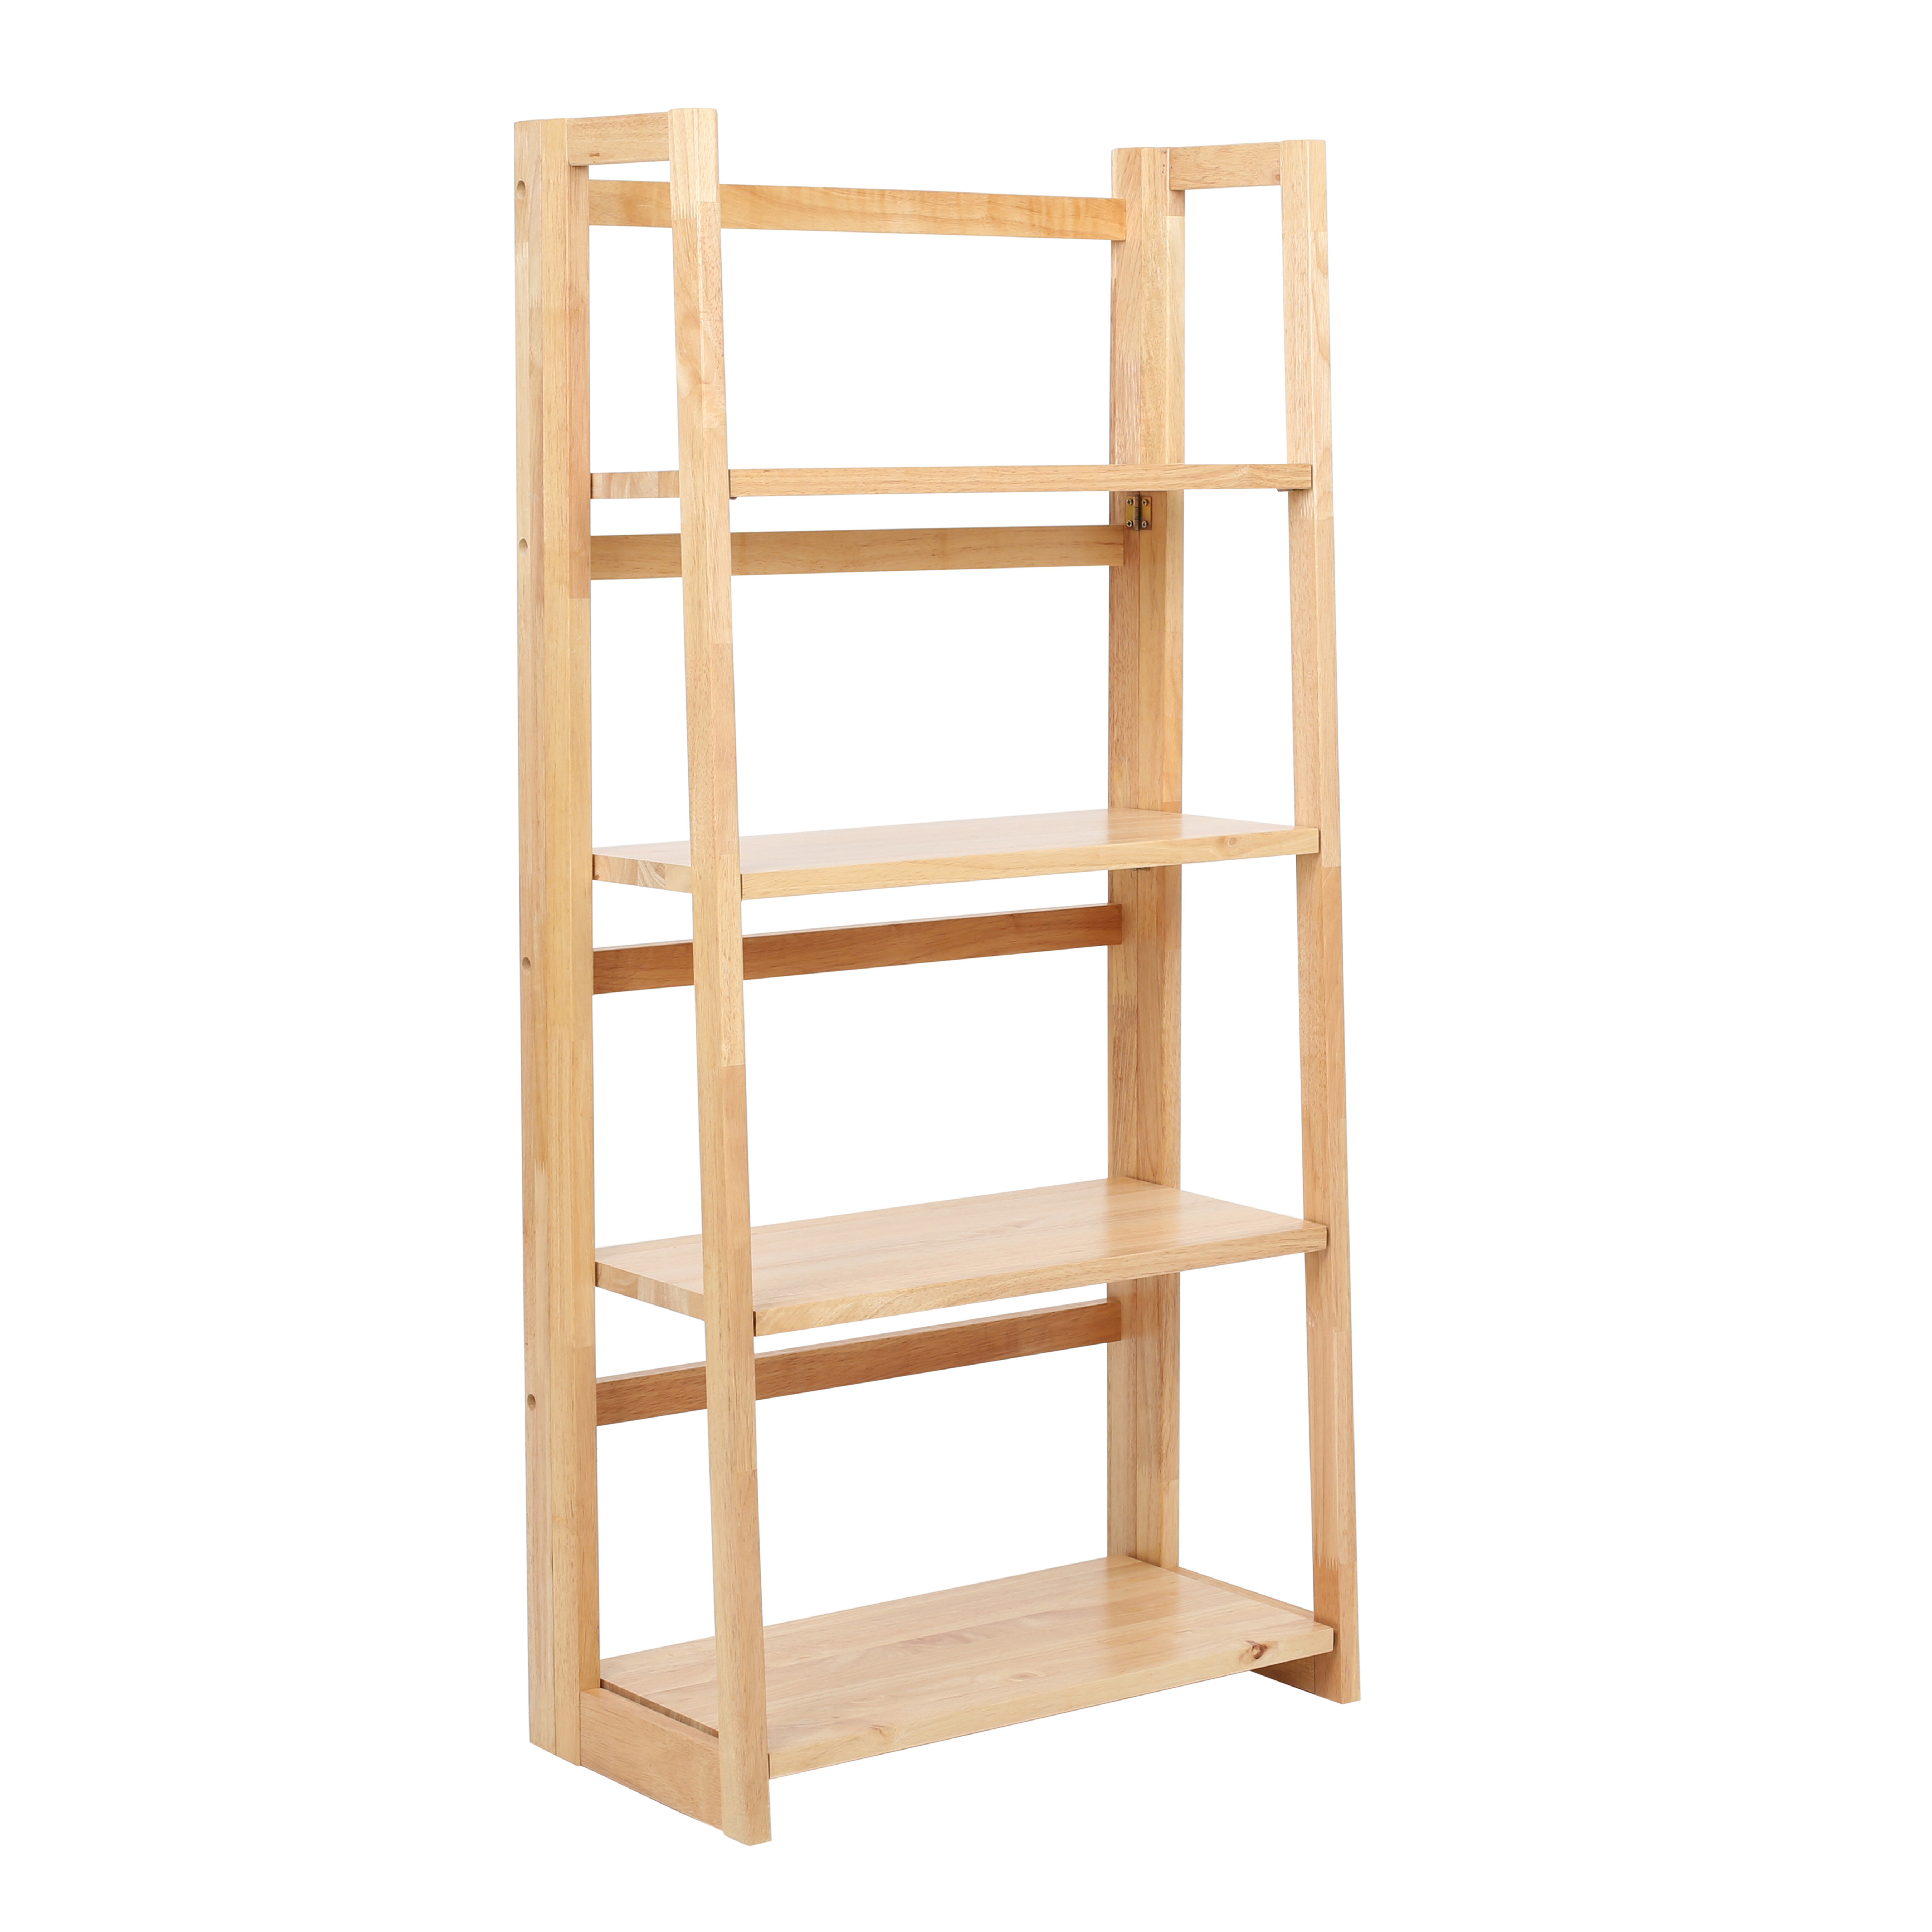 wood black walmart room book doors convenience living concepts mainstays bookcase x bookshelf metal cabinet shelf white stackable with folding silver shelves